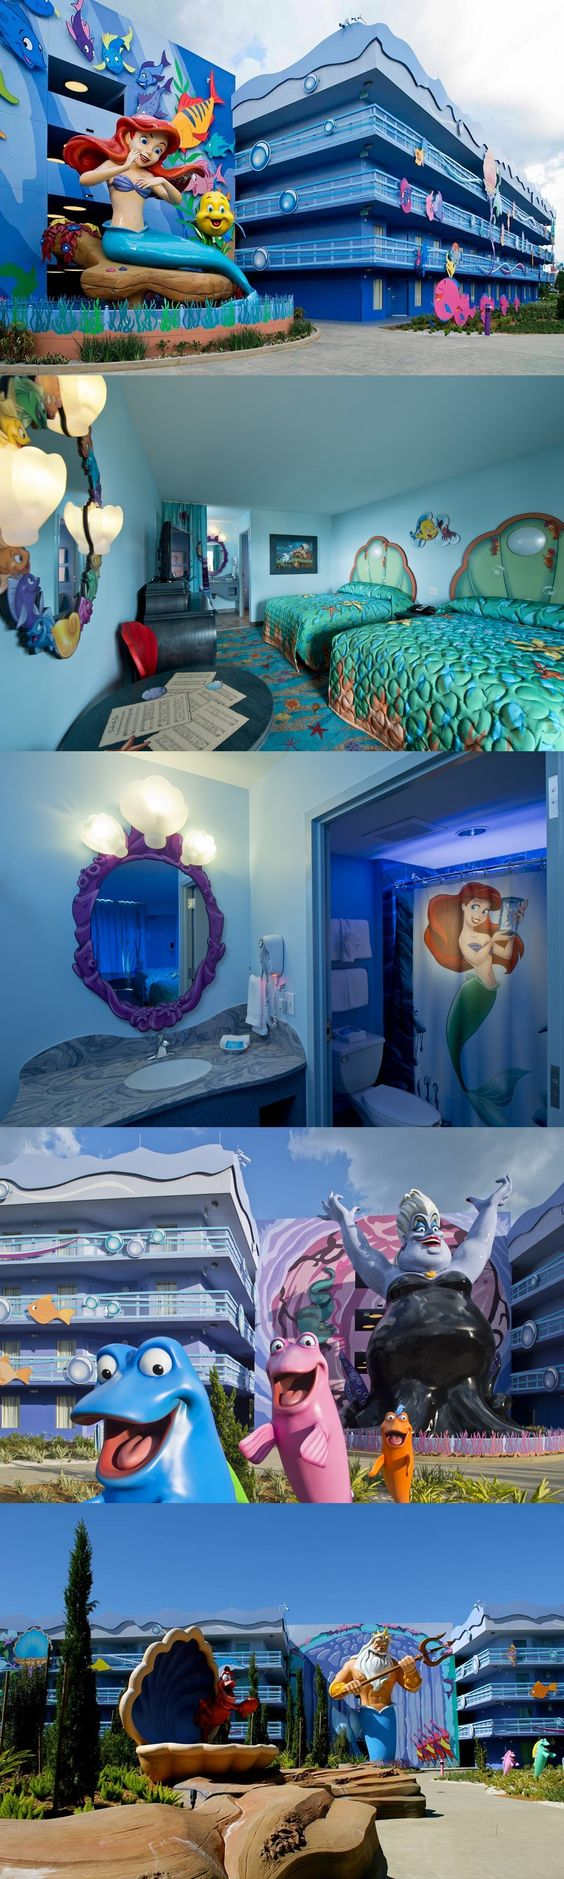 """Ariel's """"Part of Your World"""" at Disney's Art of Animation Resort"""